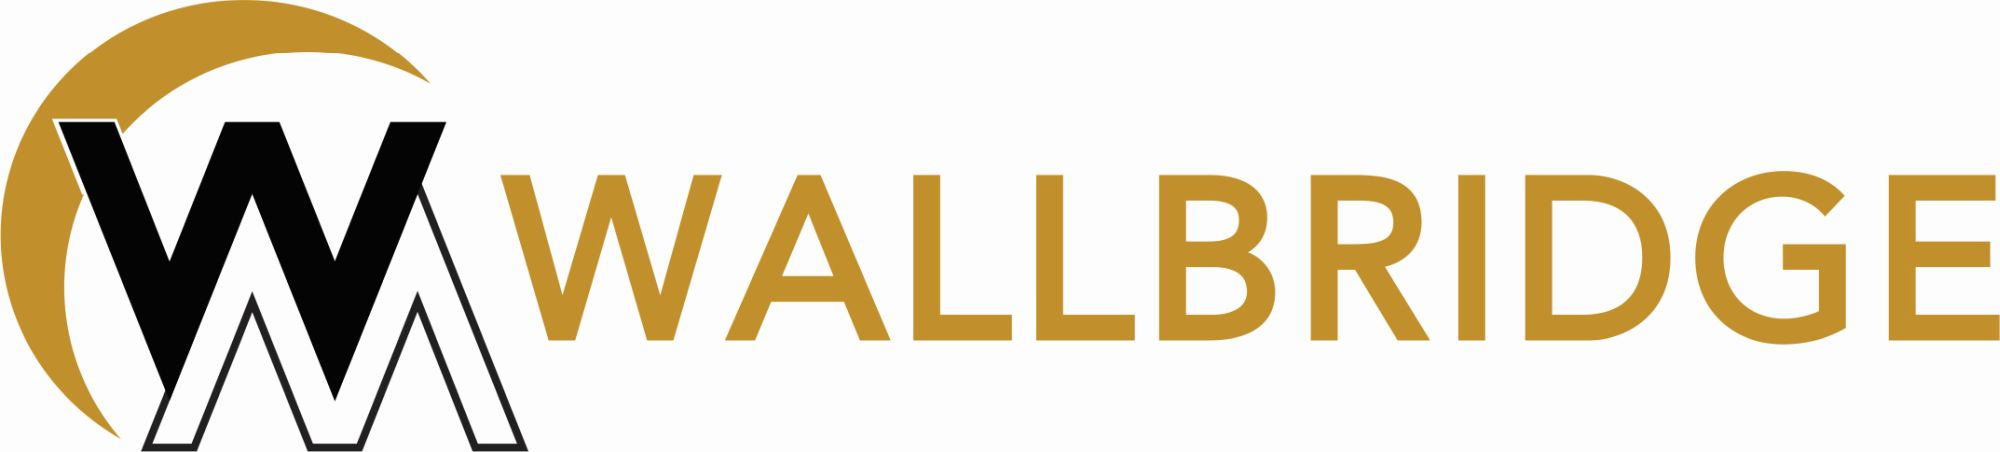 Wallbridge Expansion Drilling on the Western Edge of Area 51 Intersects Wide Zones of Strong Gold Mineralization at Shallow Depths